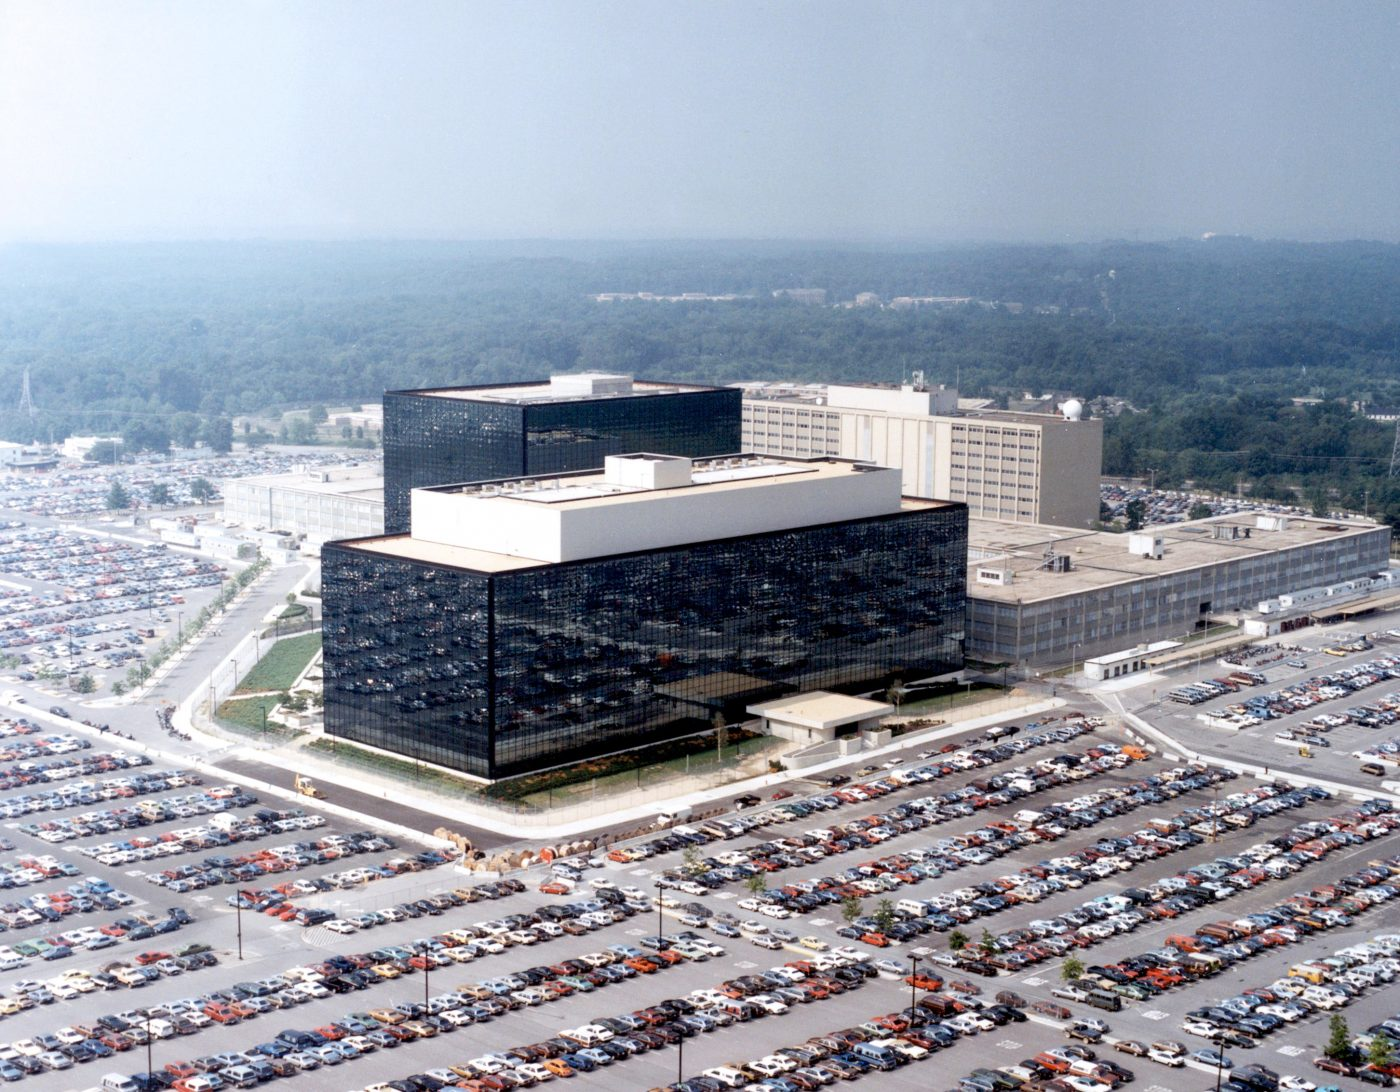 NSA headquarters where malware was hacked and released